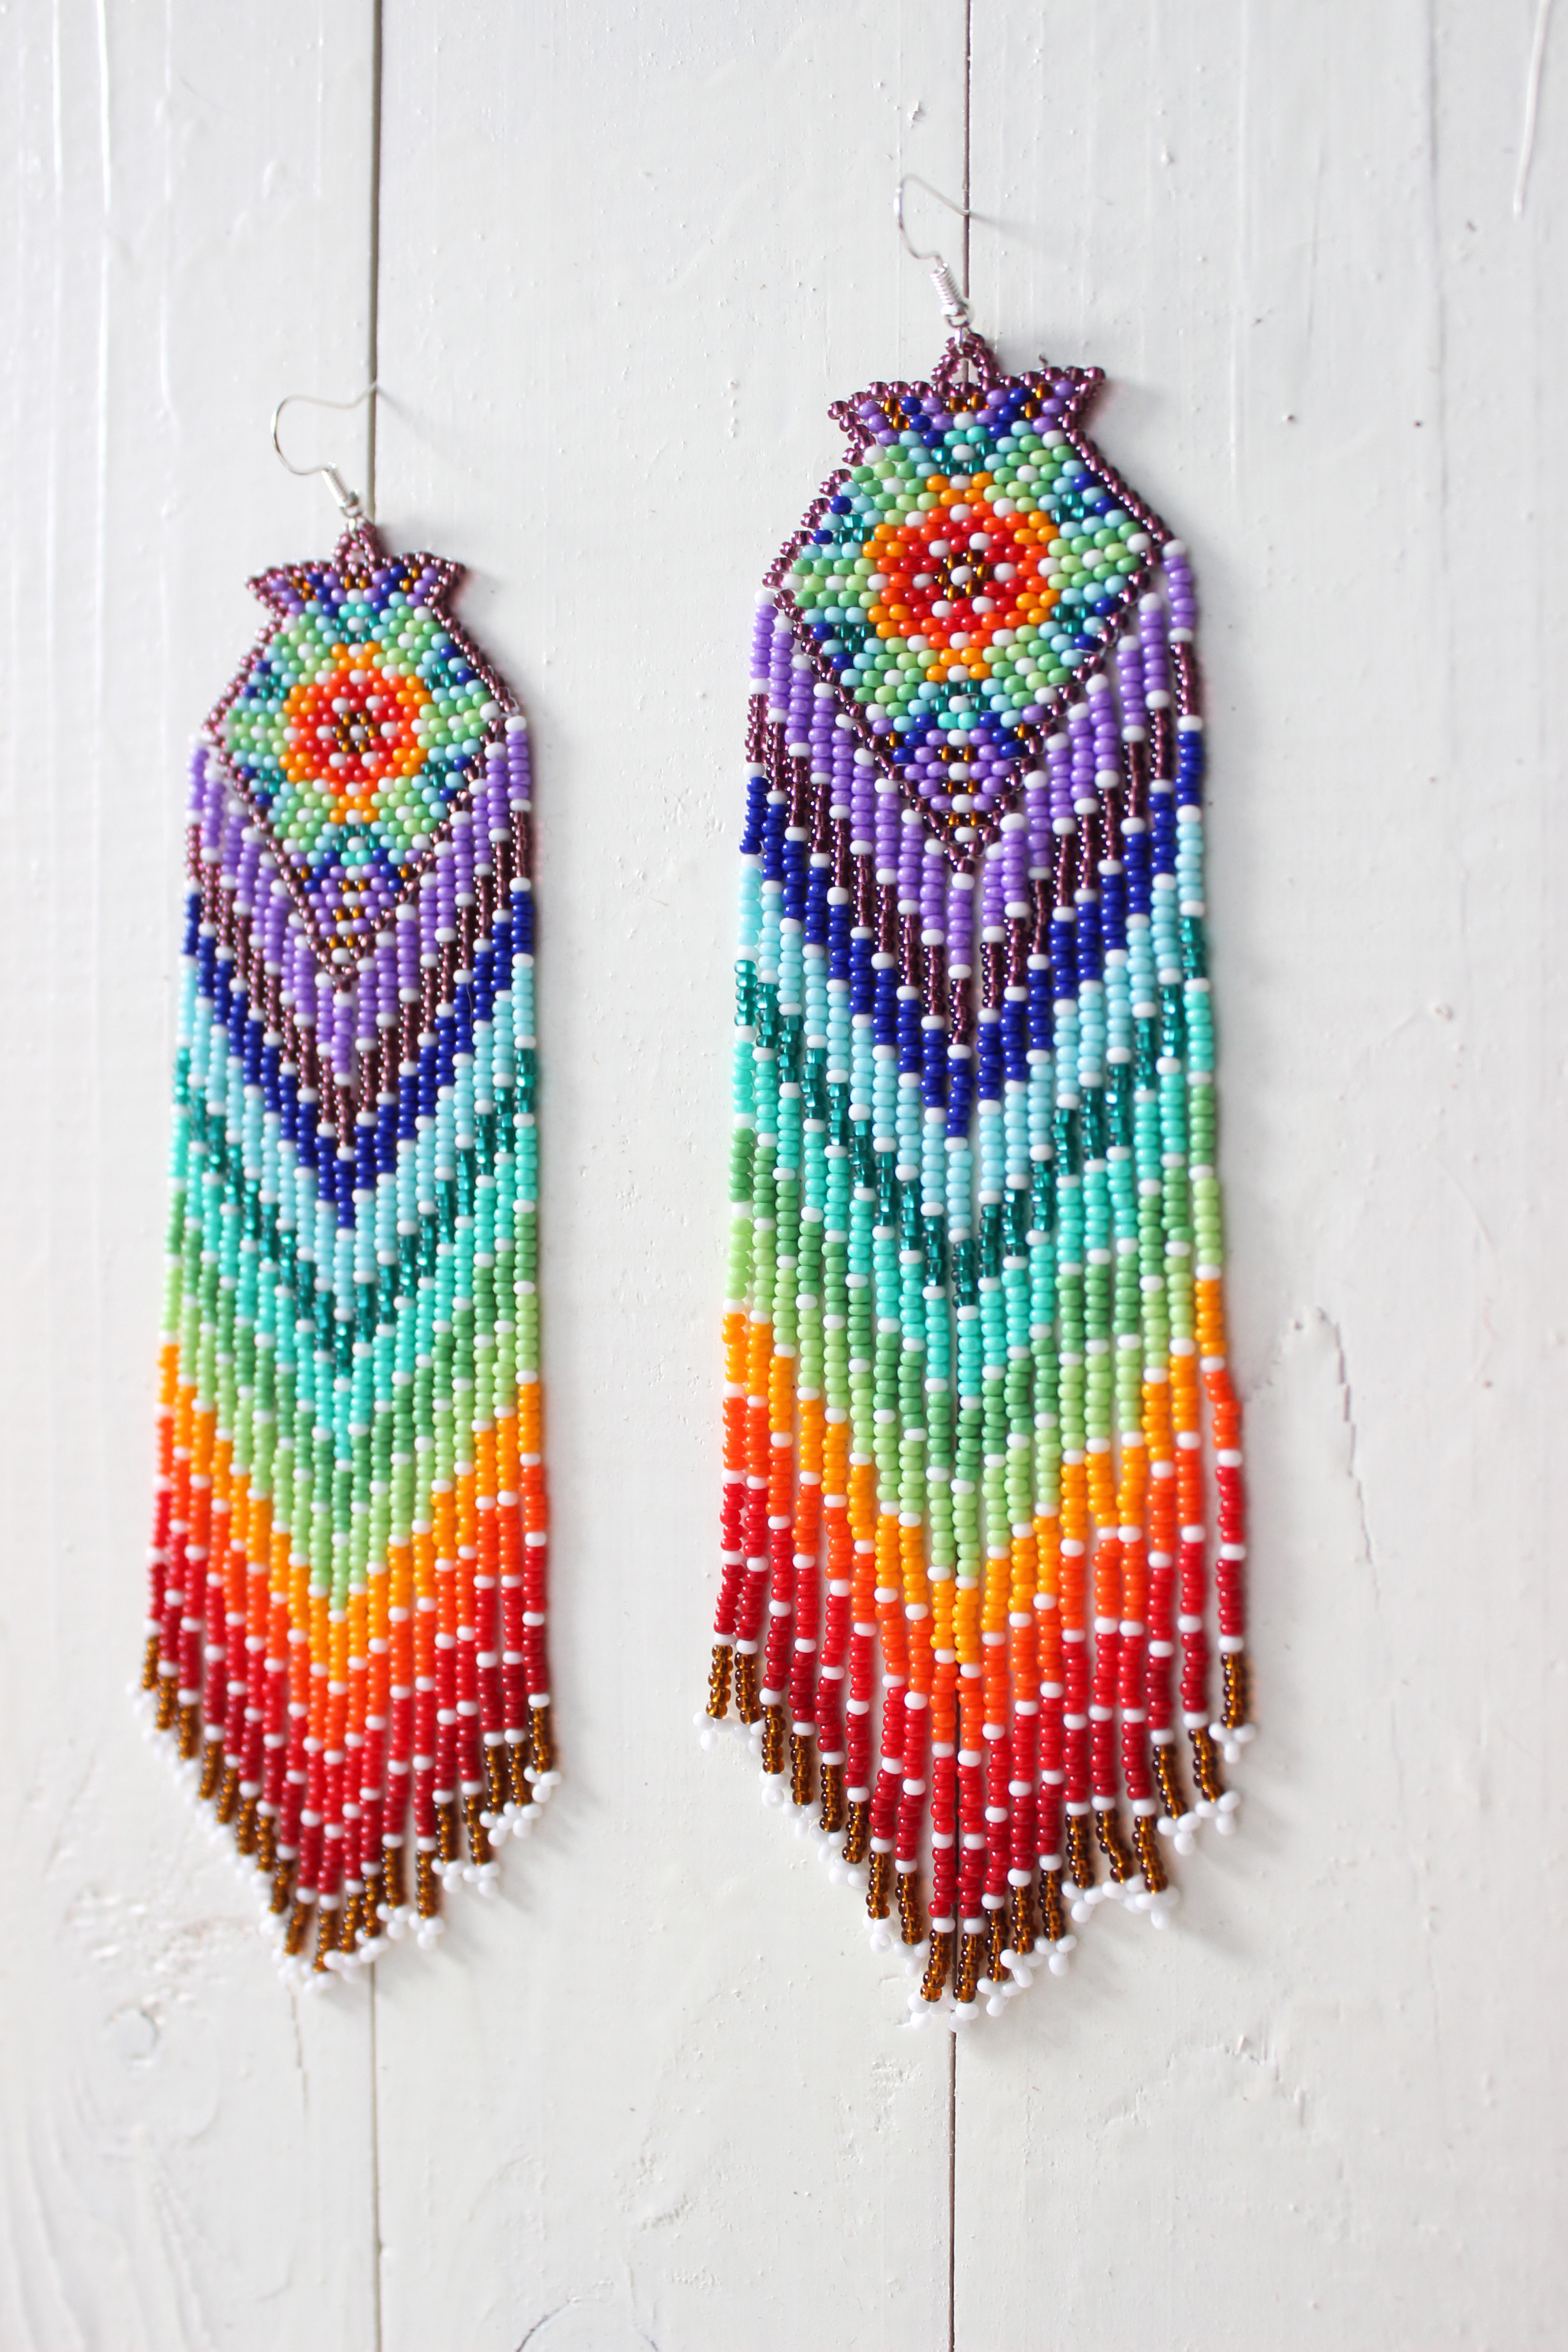 I Ship Within 10 Days After Clear Payment As Make Earrings Personally For Each Customer Native American